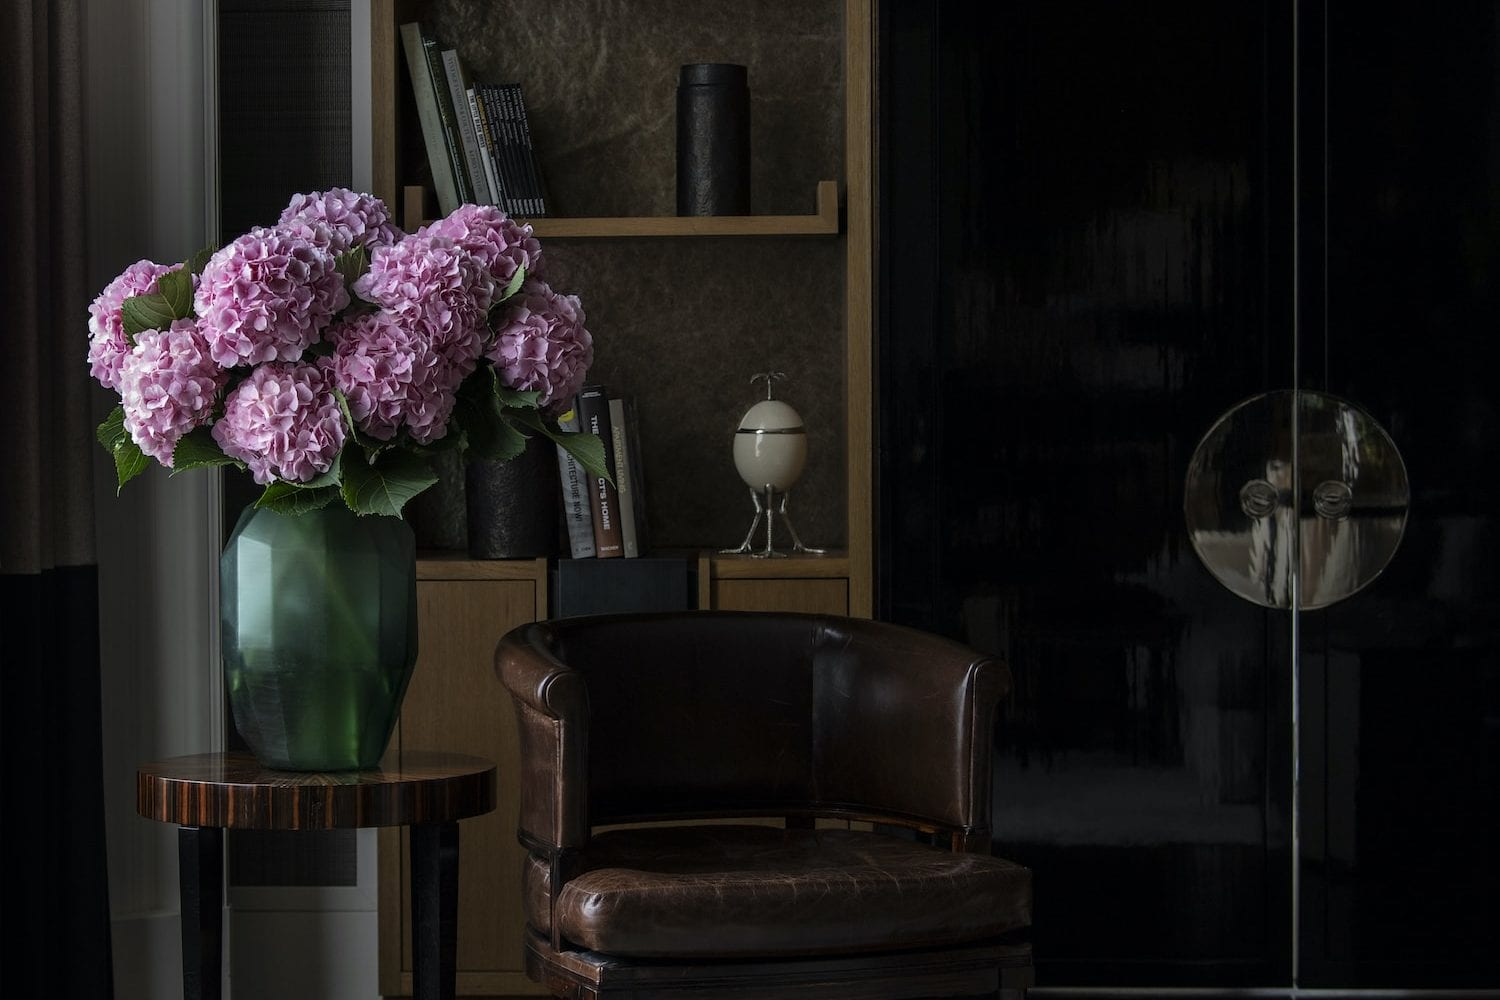 Colour Me Beautiful - Send cut to order, luxury peony flowers direct from the growers and delivered by UK's first online florist to be entirely sustainable and 100% plastic-free.